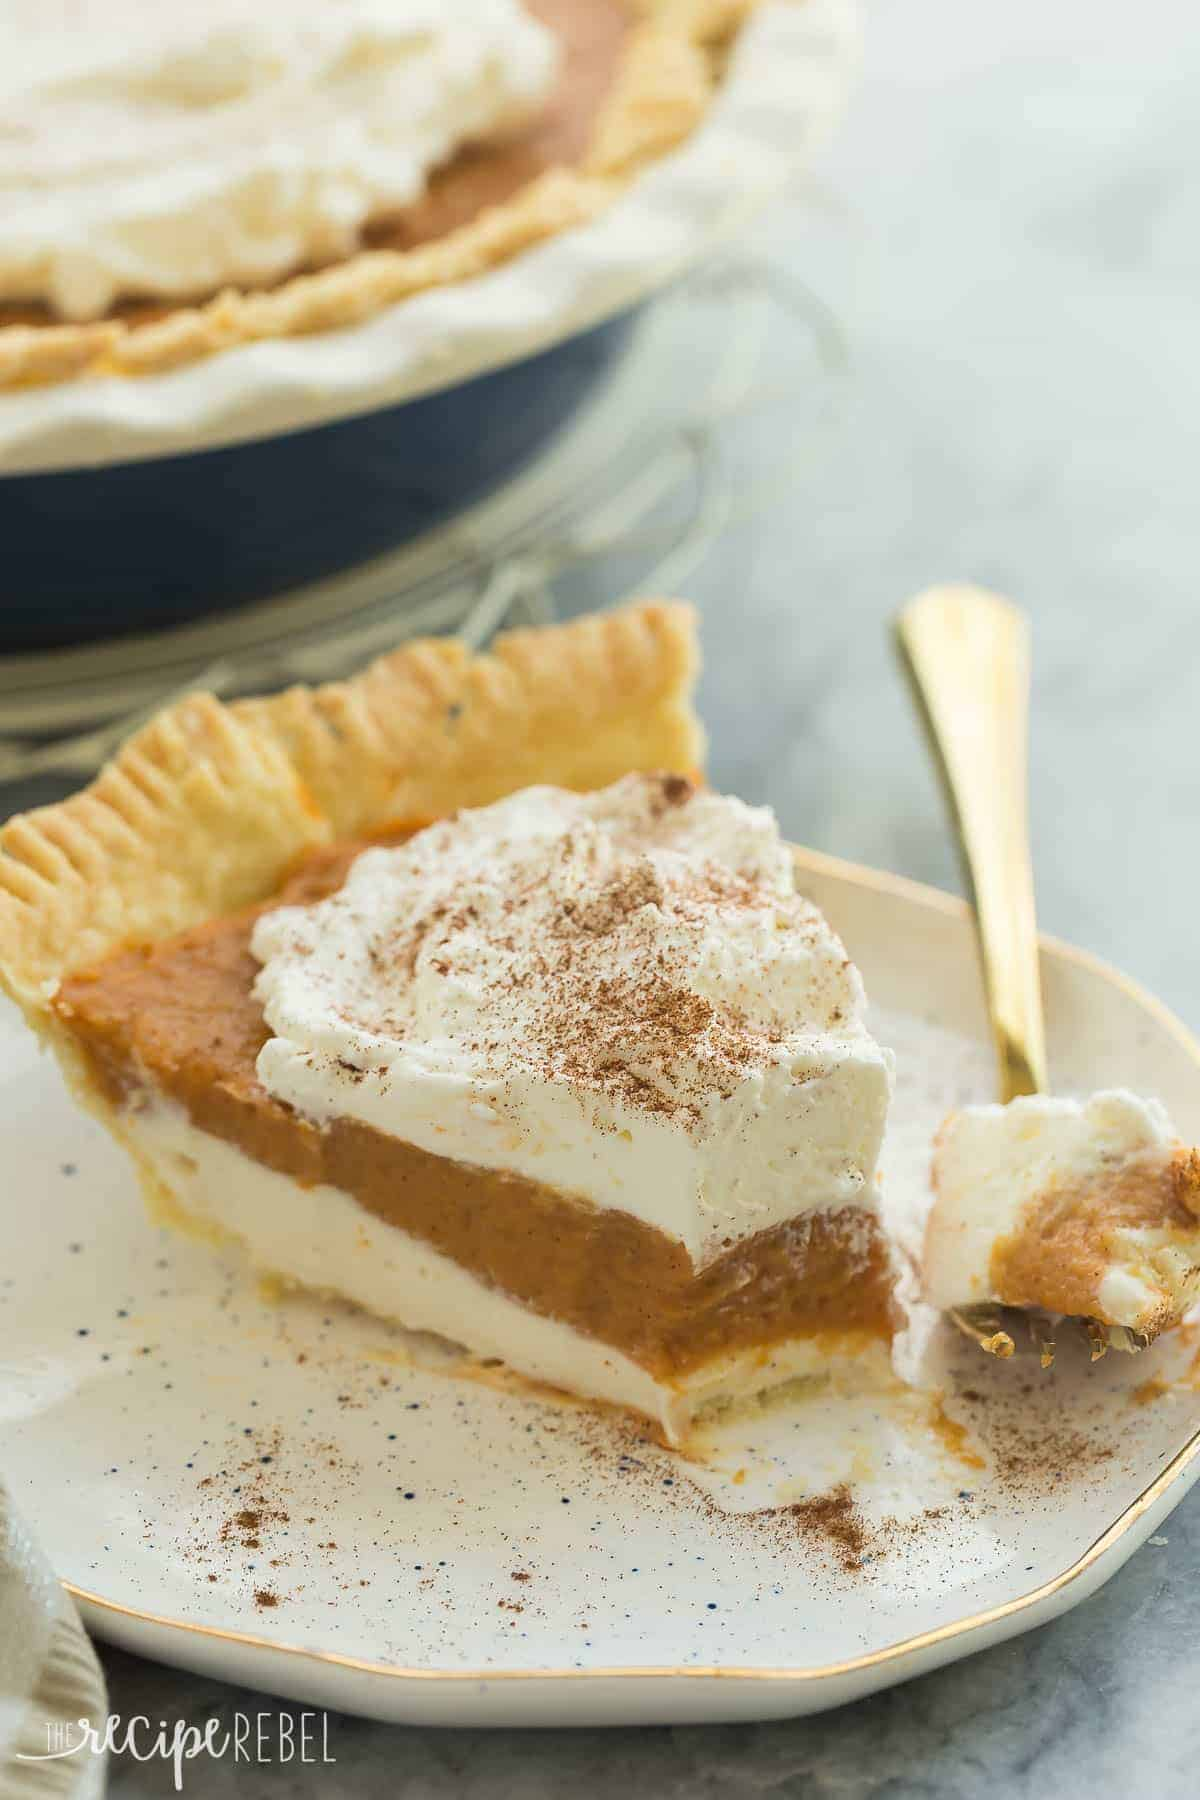 This Is The Ultimate Pumpkin Pie Plete With A Homemade Crust Creamy Cheesecake